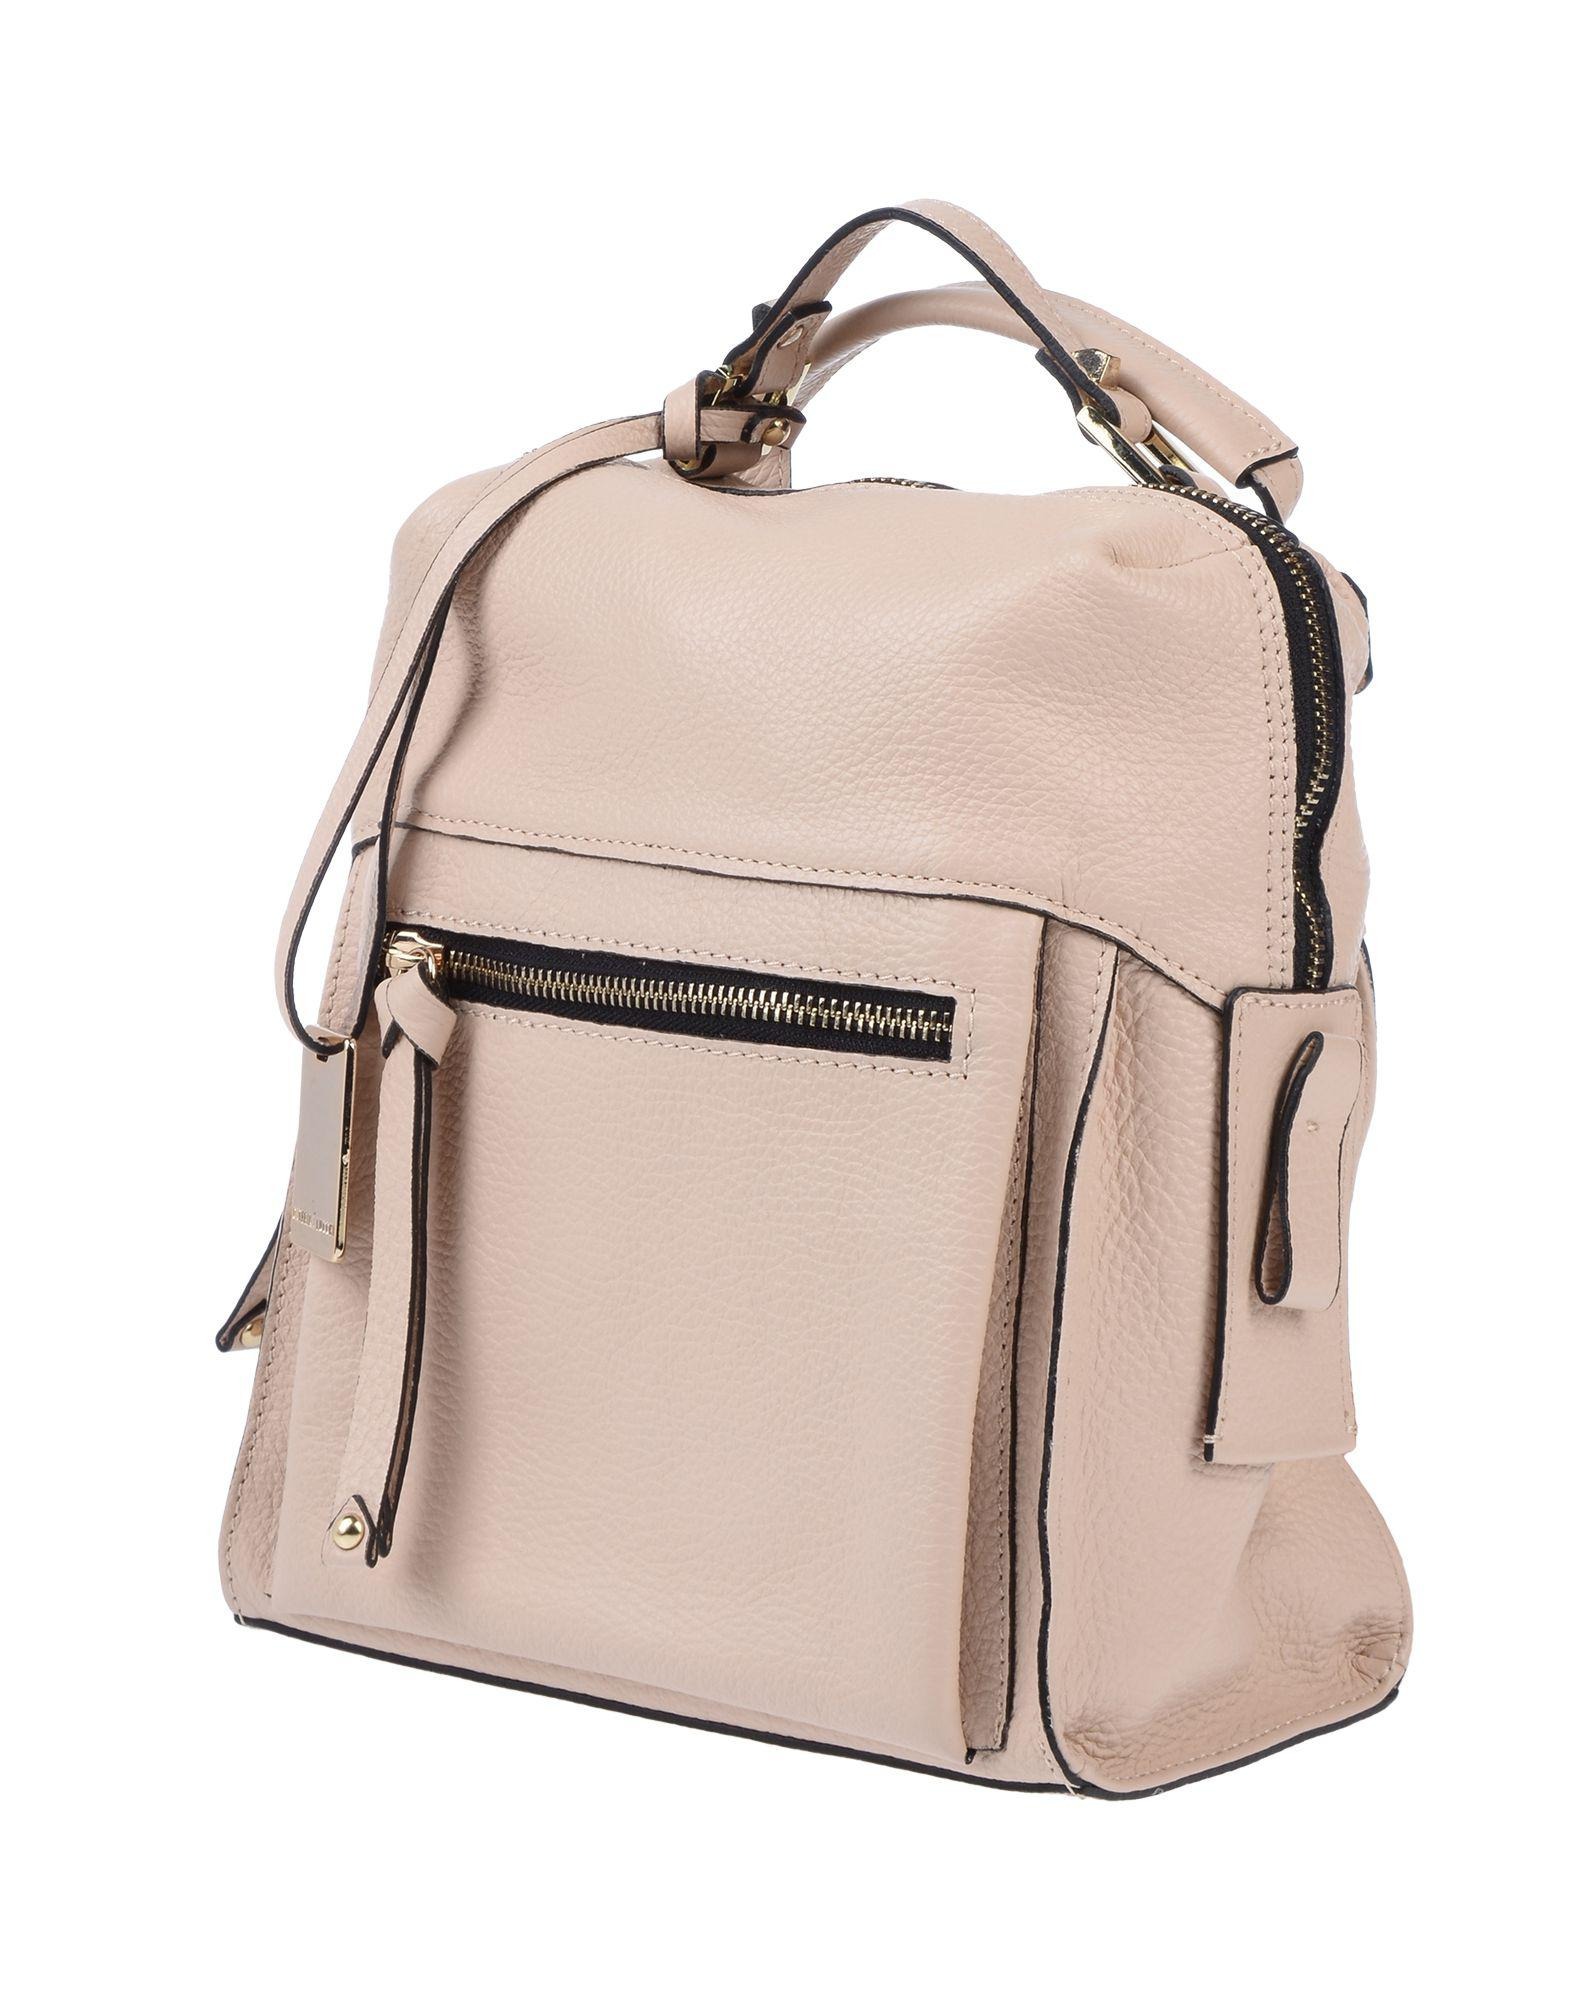 amp; Lucchi Bags Pink Lyst Backpacks In Caterina Bum 84Ezzf